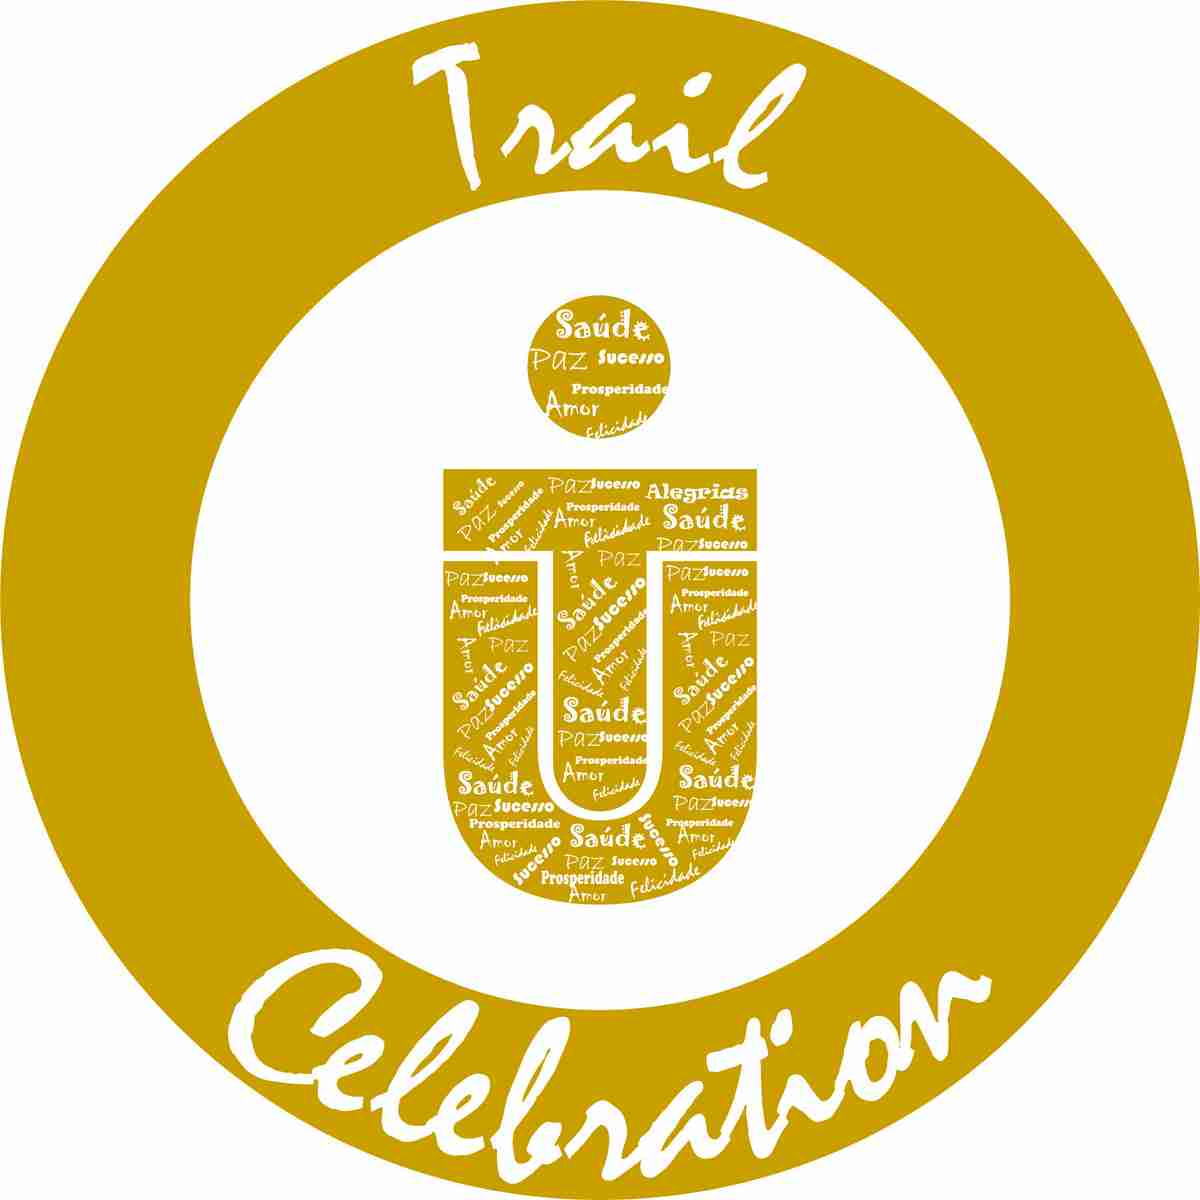 Trail Celebration